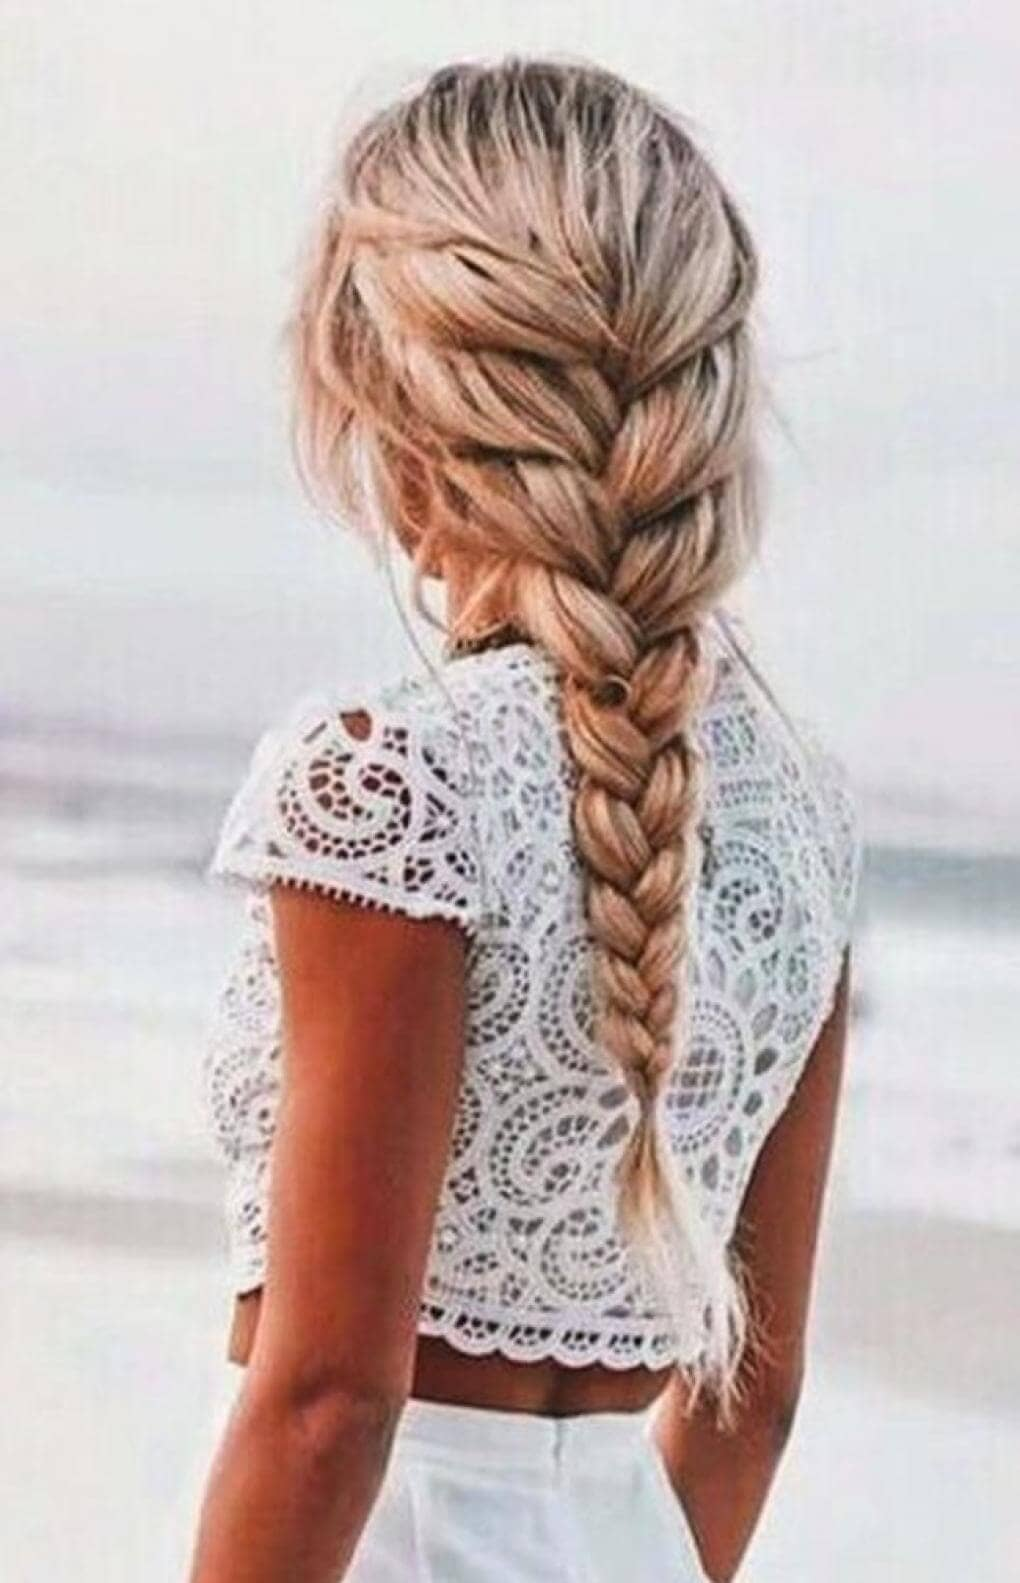 Beachy Look for Sand and Surf